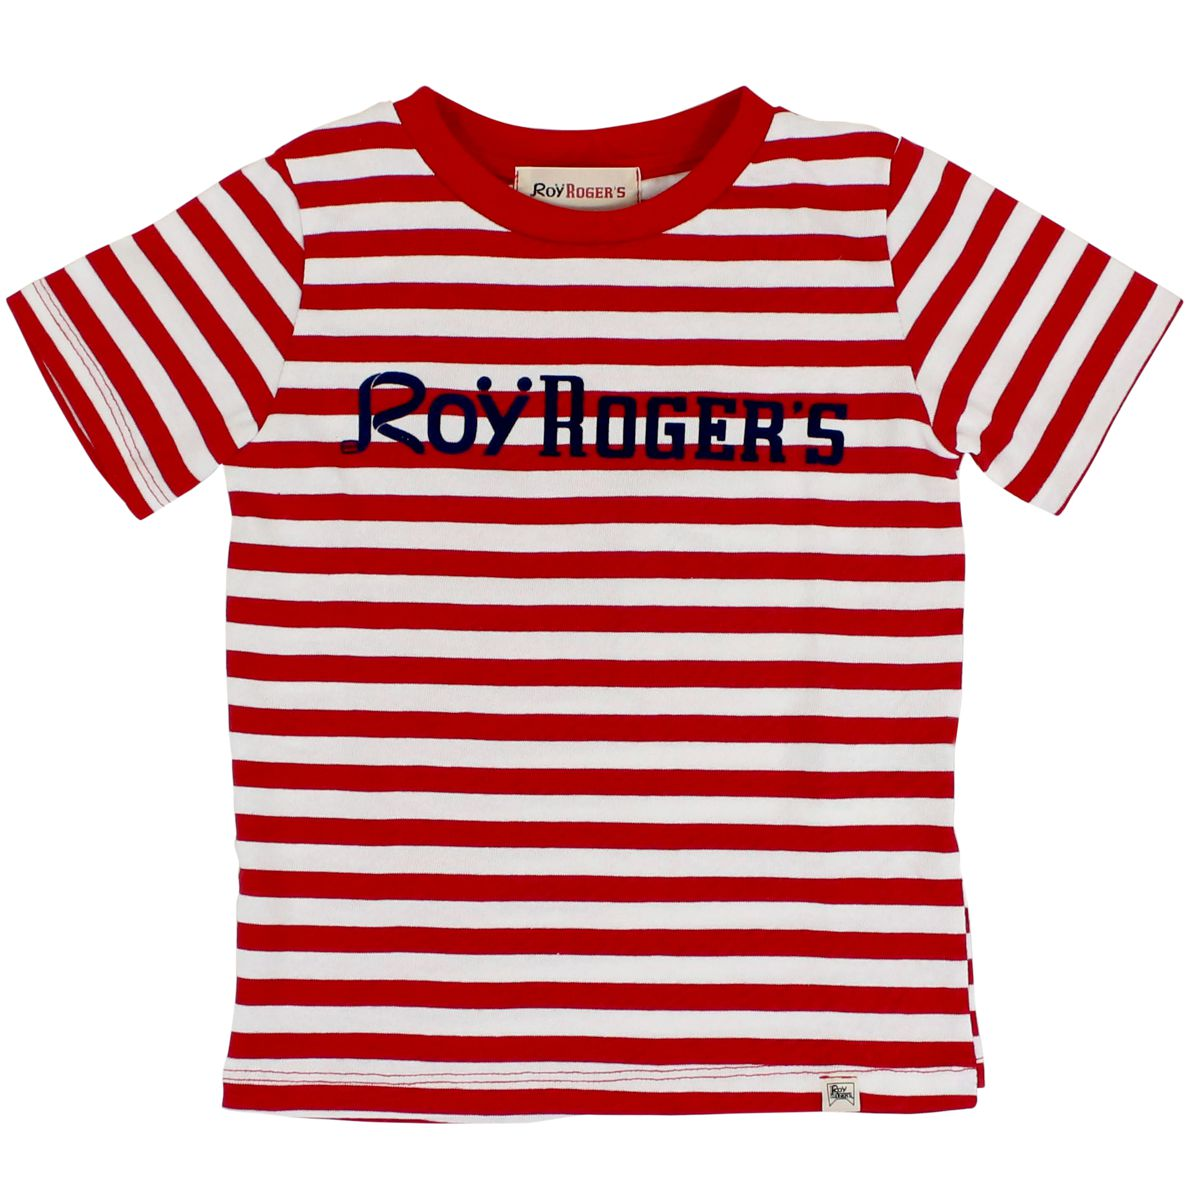 Striped T-shirt with contrast logo Red / b.co Roy Roger's